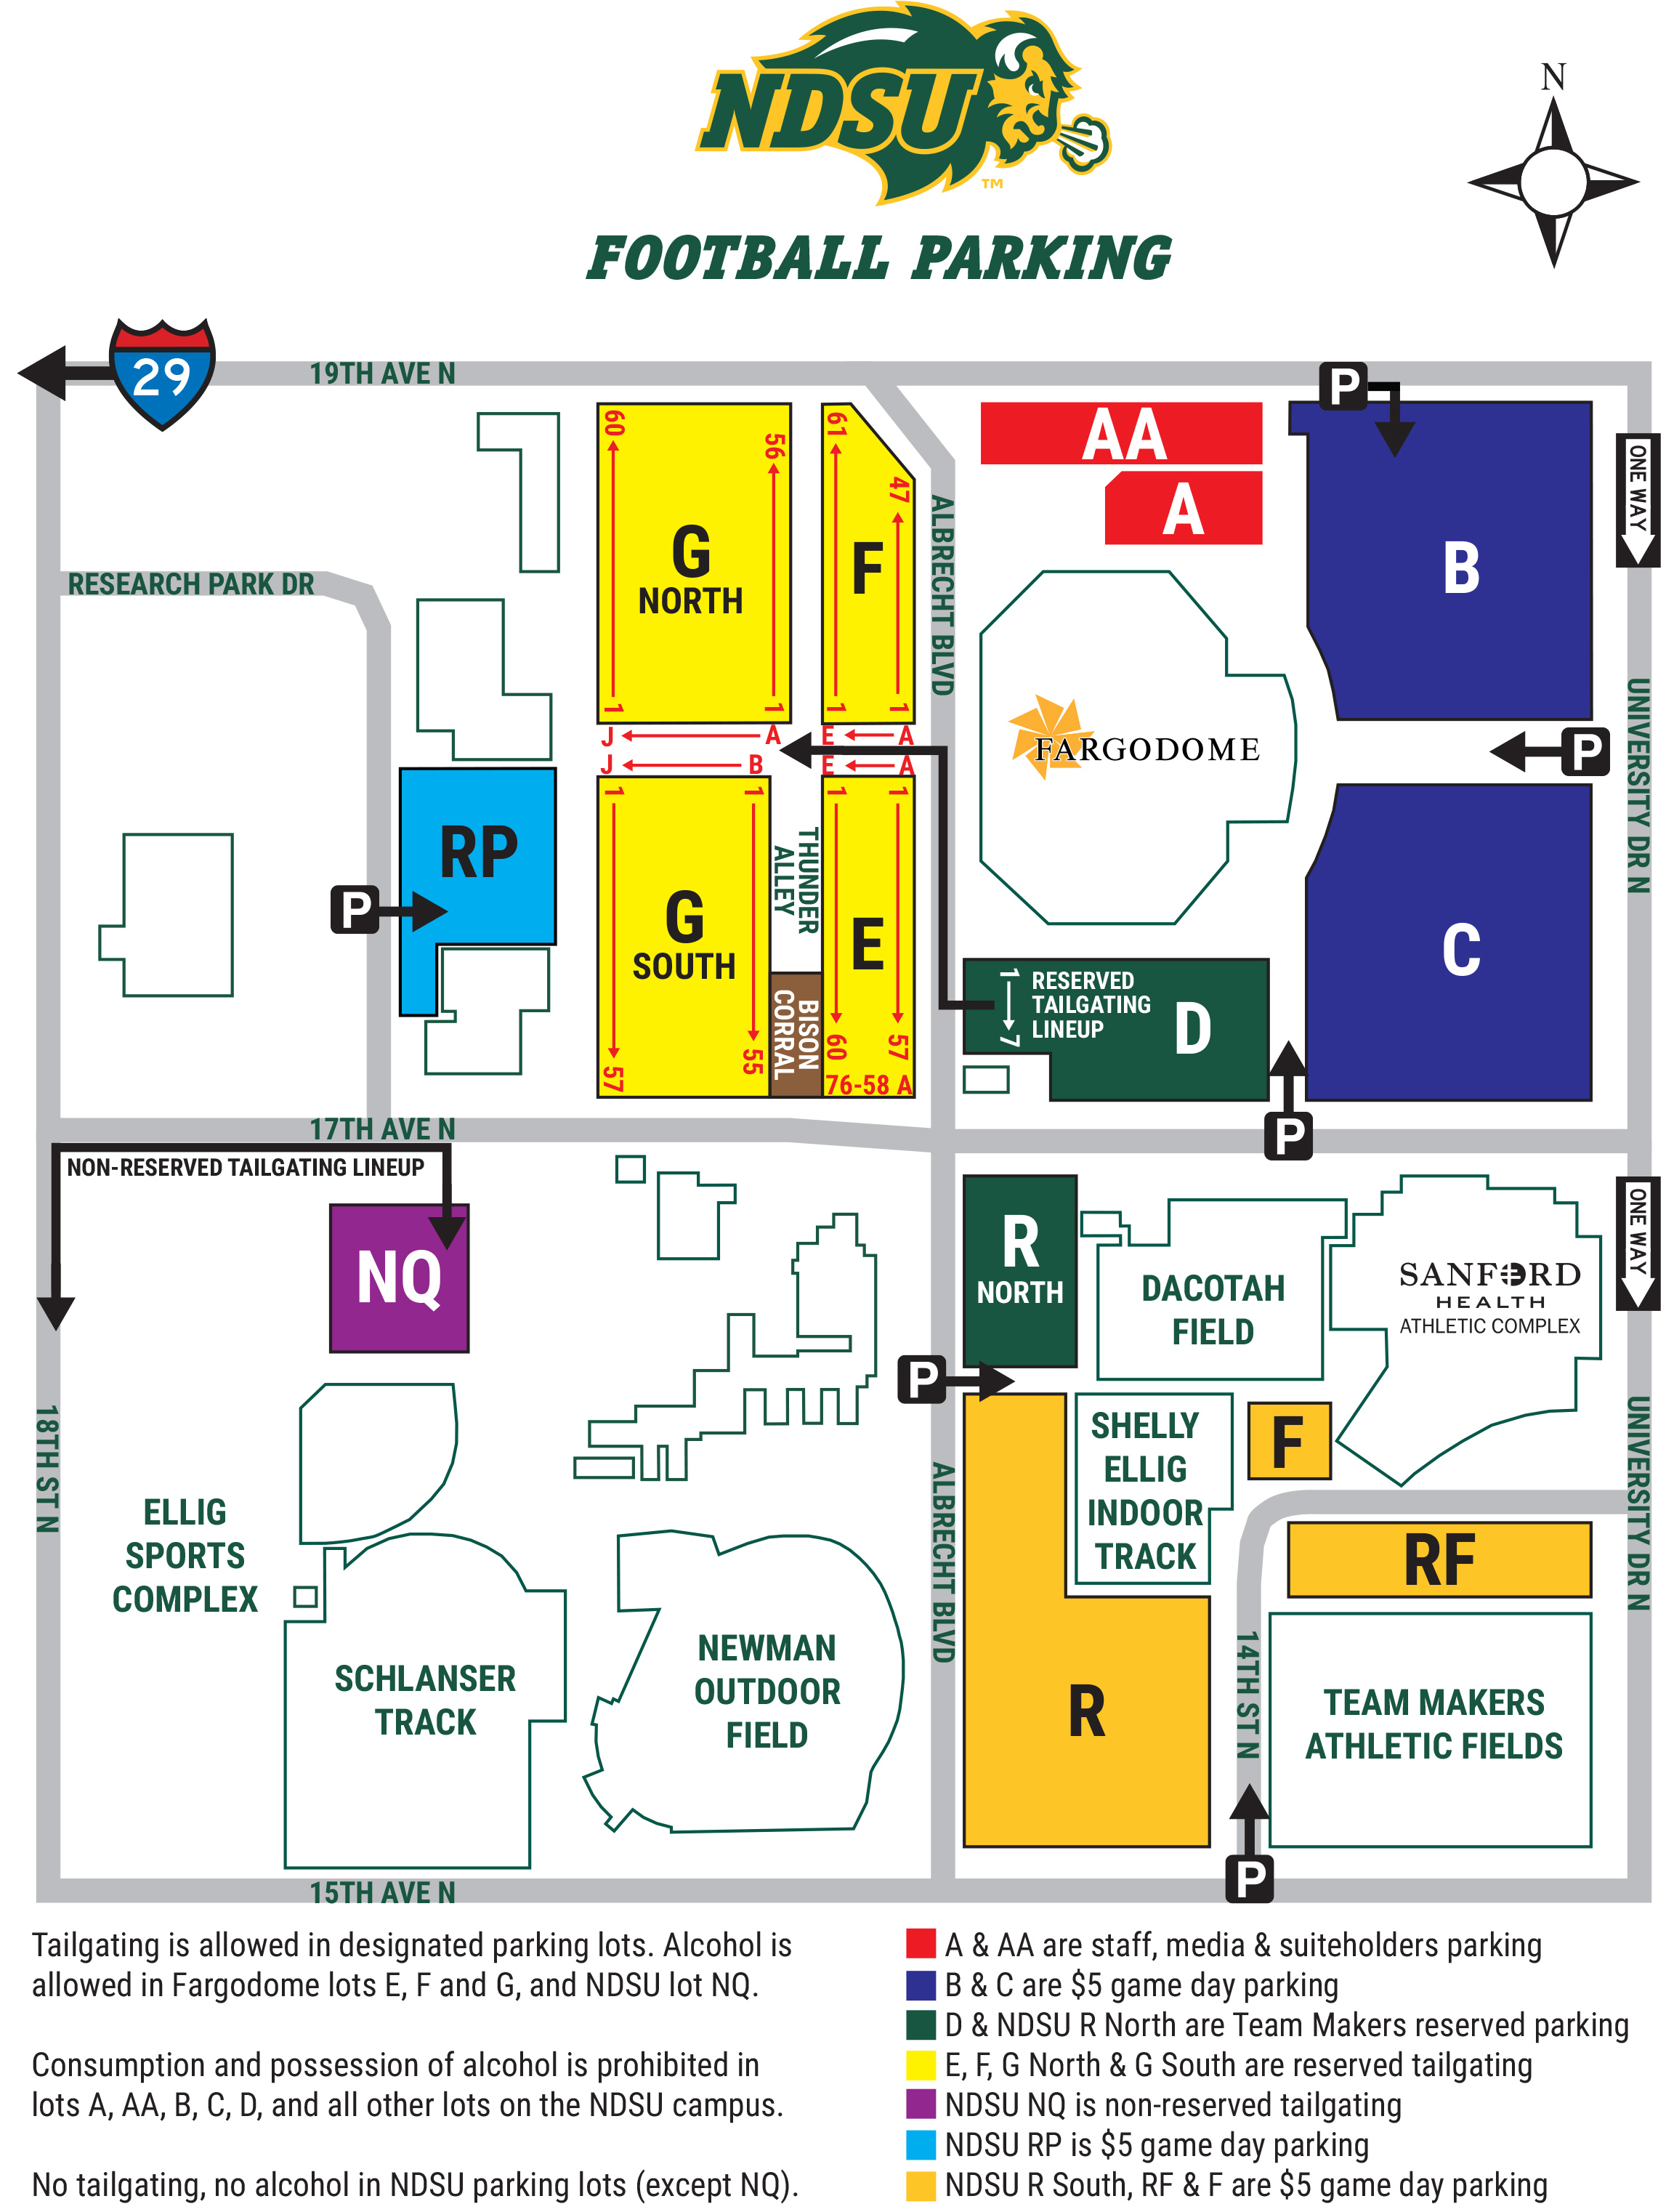 NDSU Football Parking Map